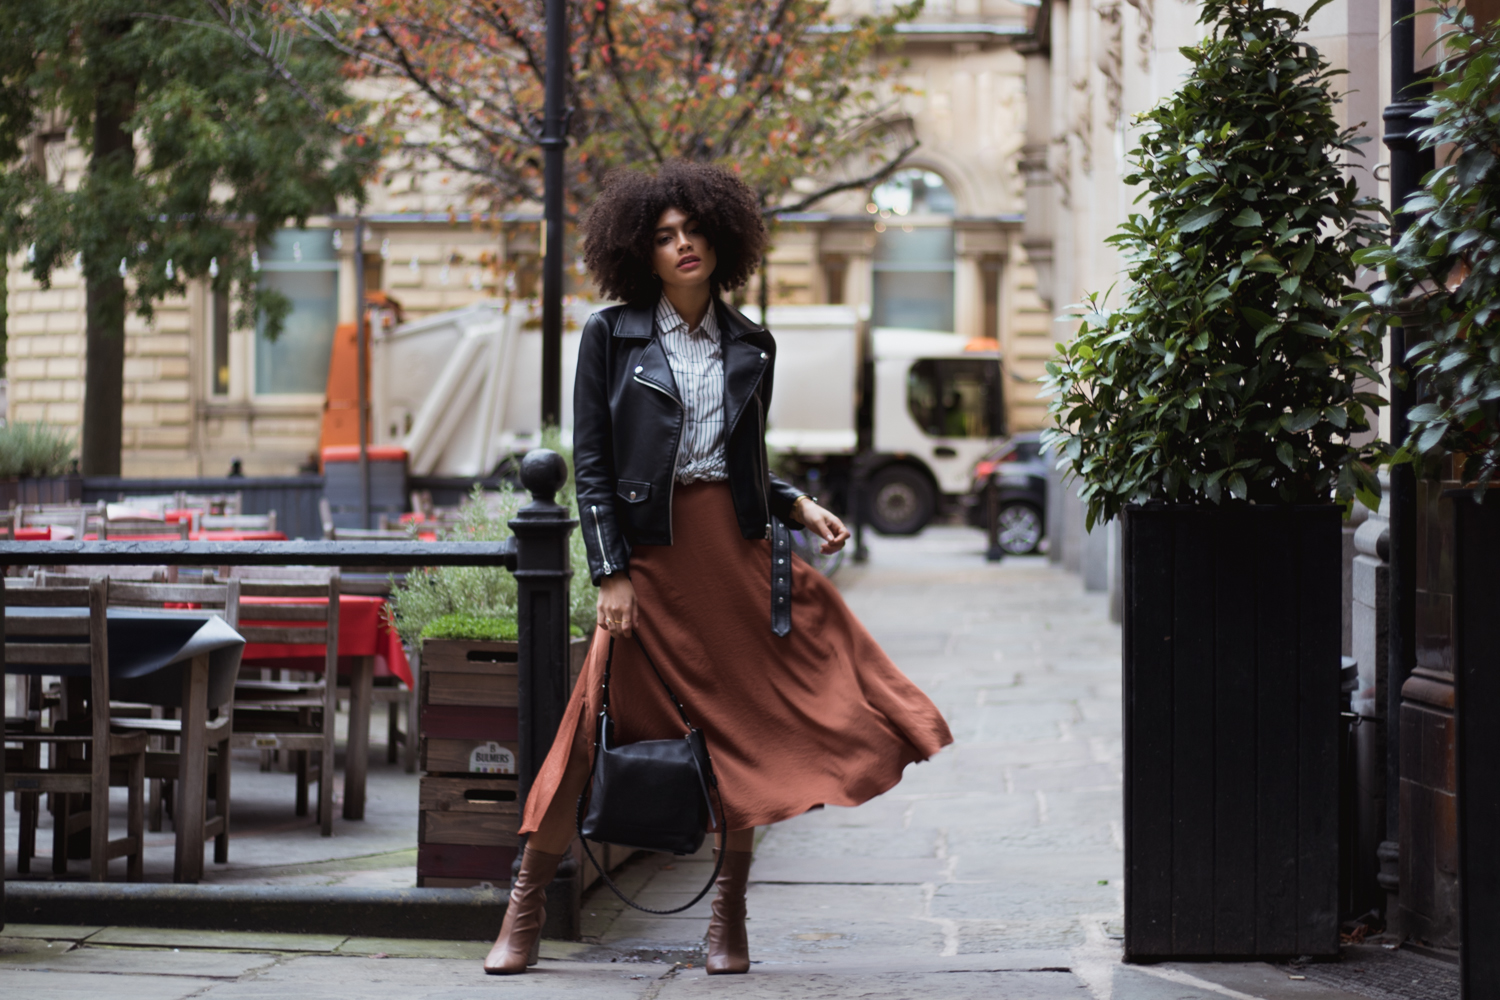 Autumn Midi skirt Outfit inspo